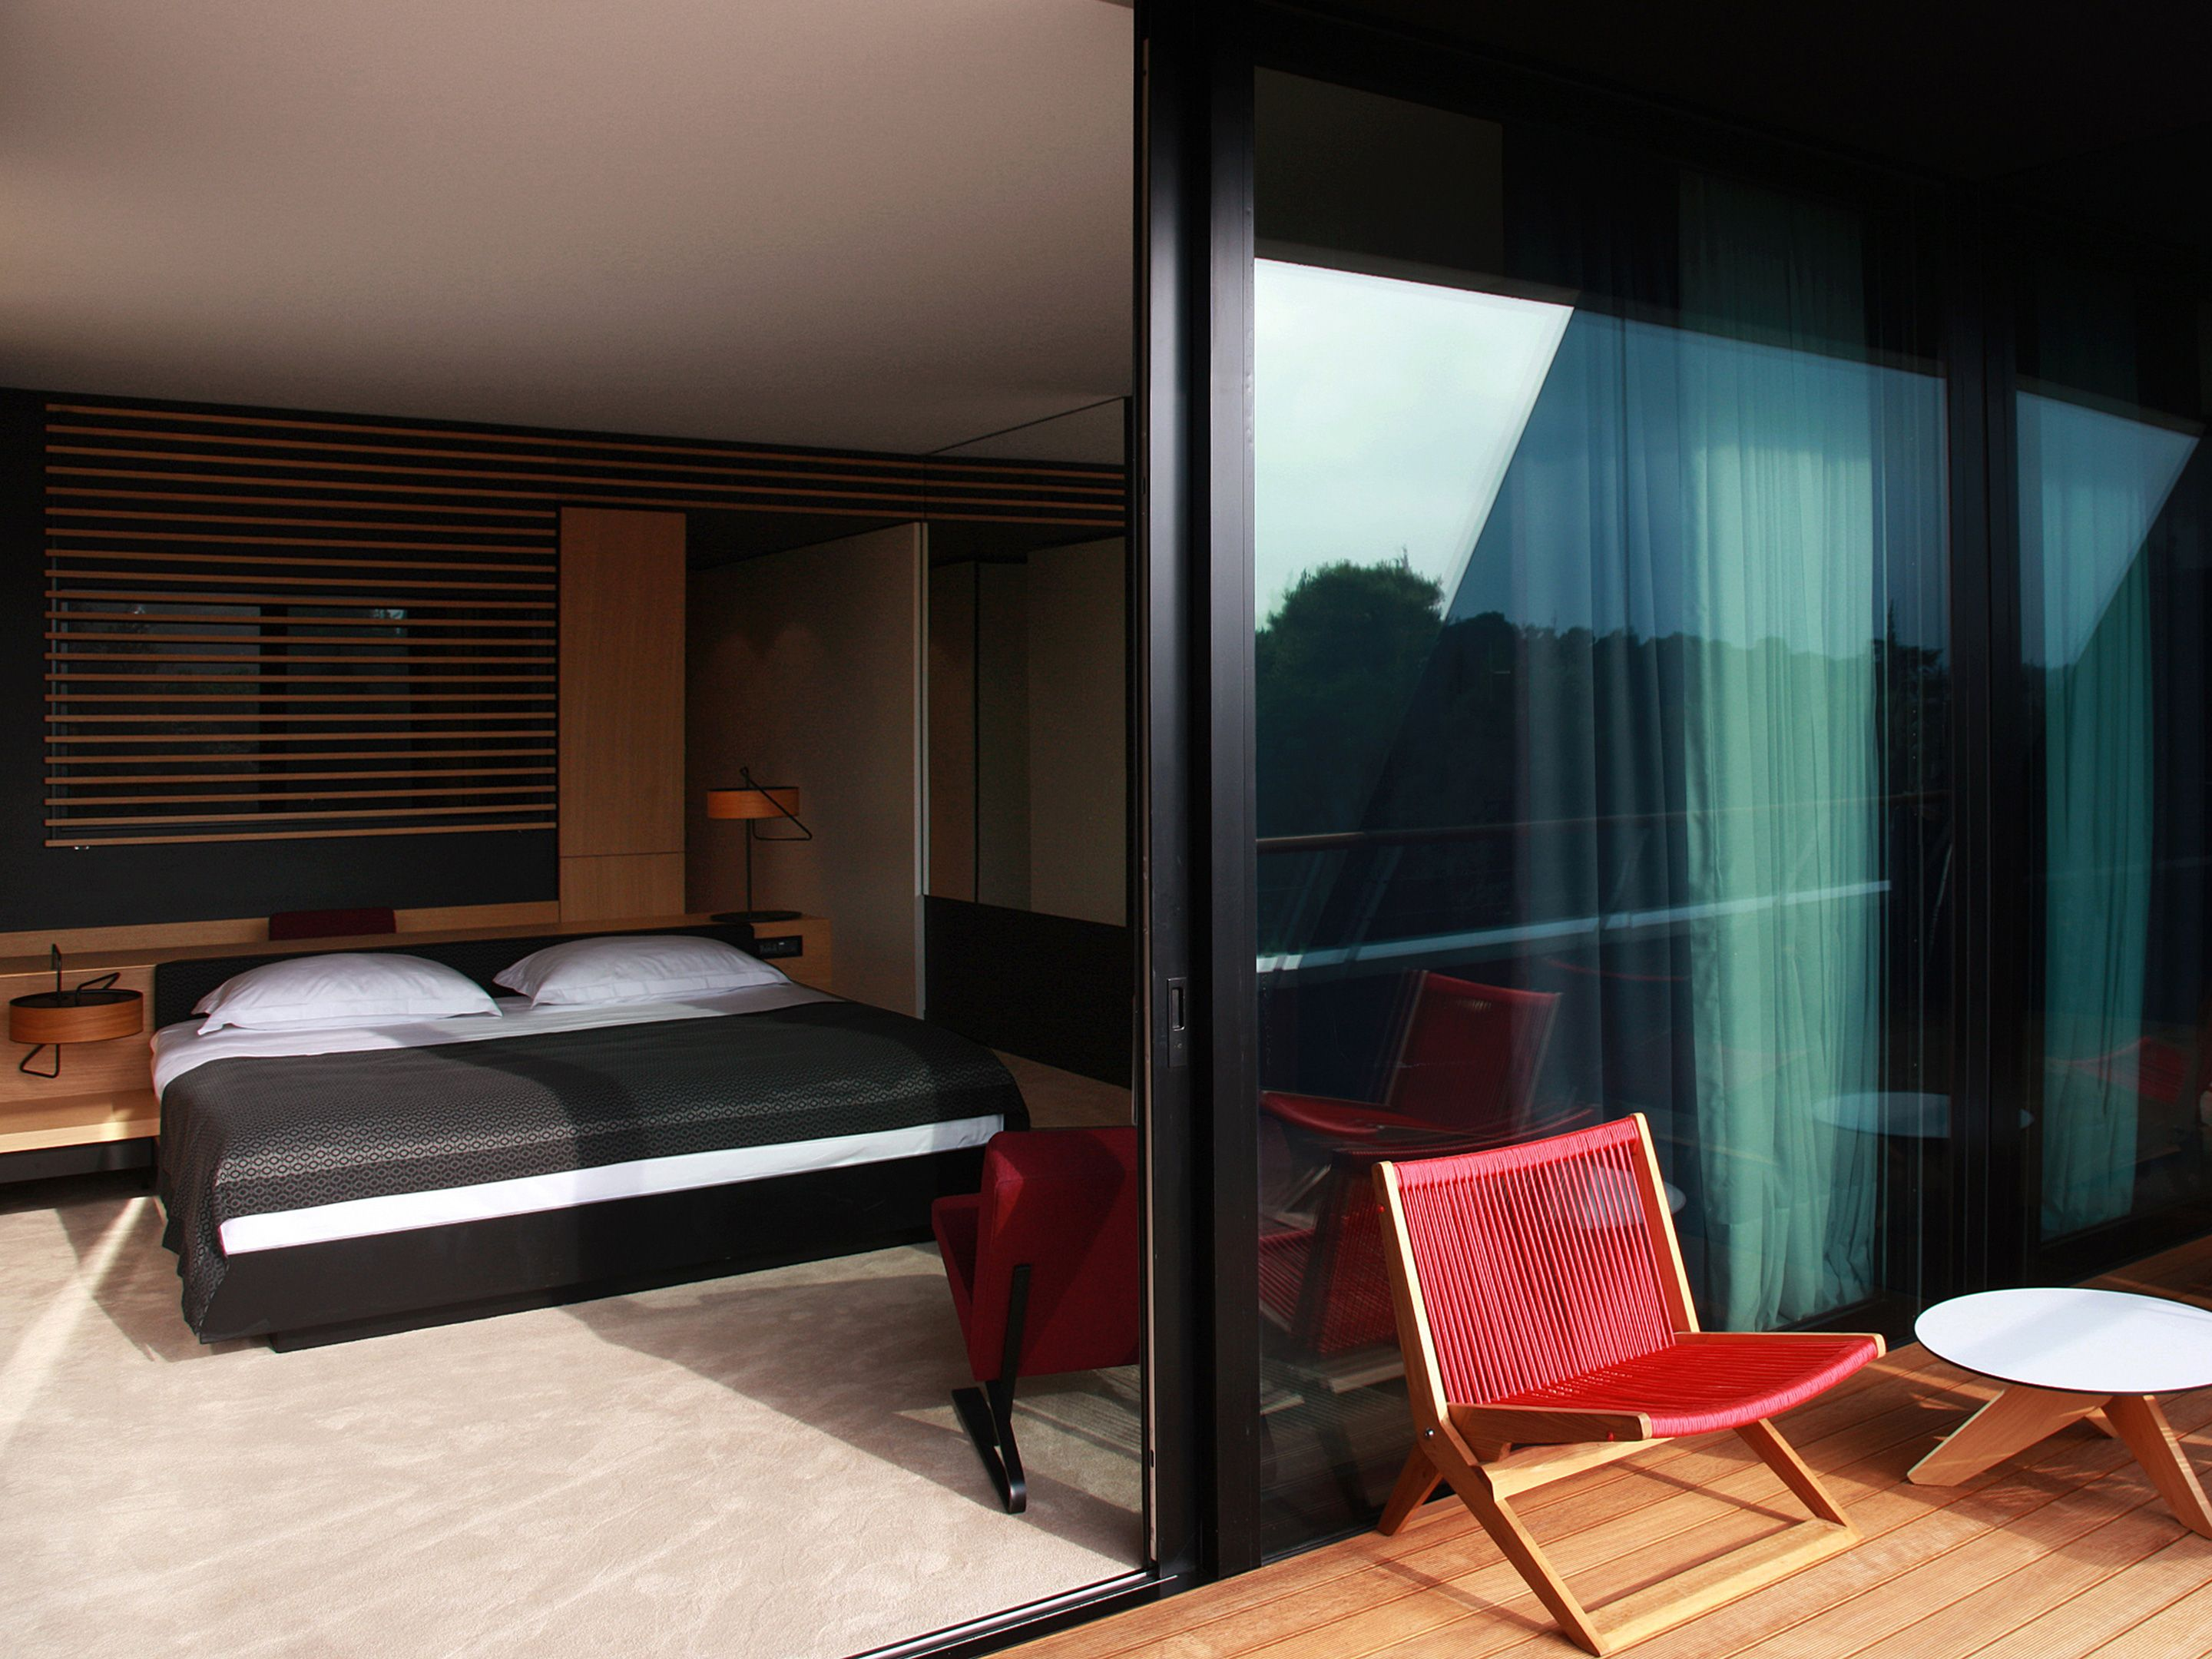 Rooms Amp Suites At Hotel Lone In Rovinj Croatia Design